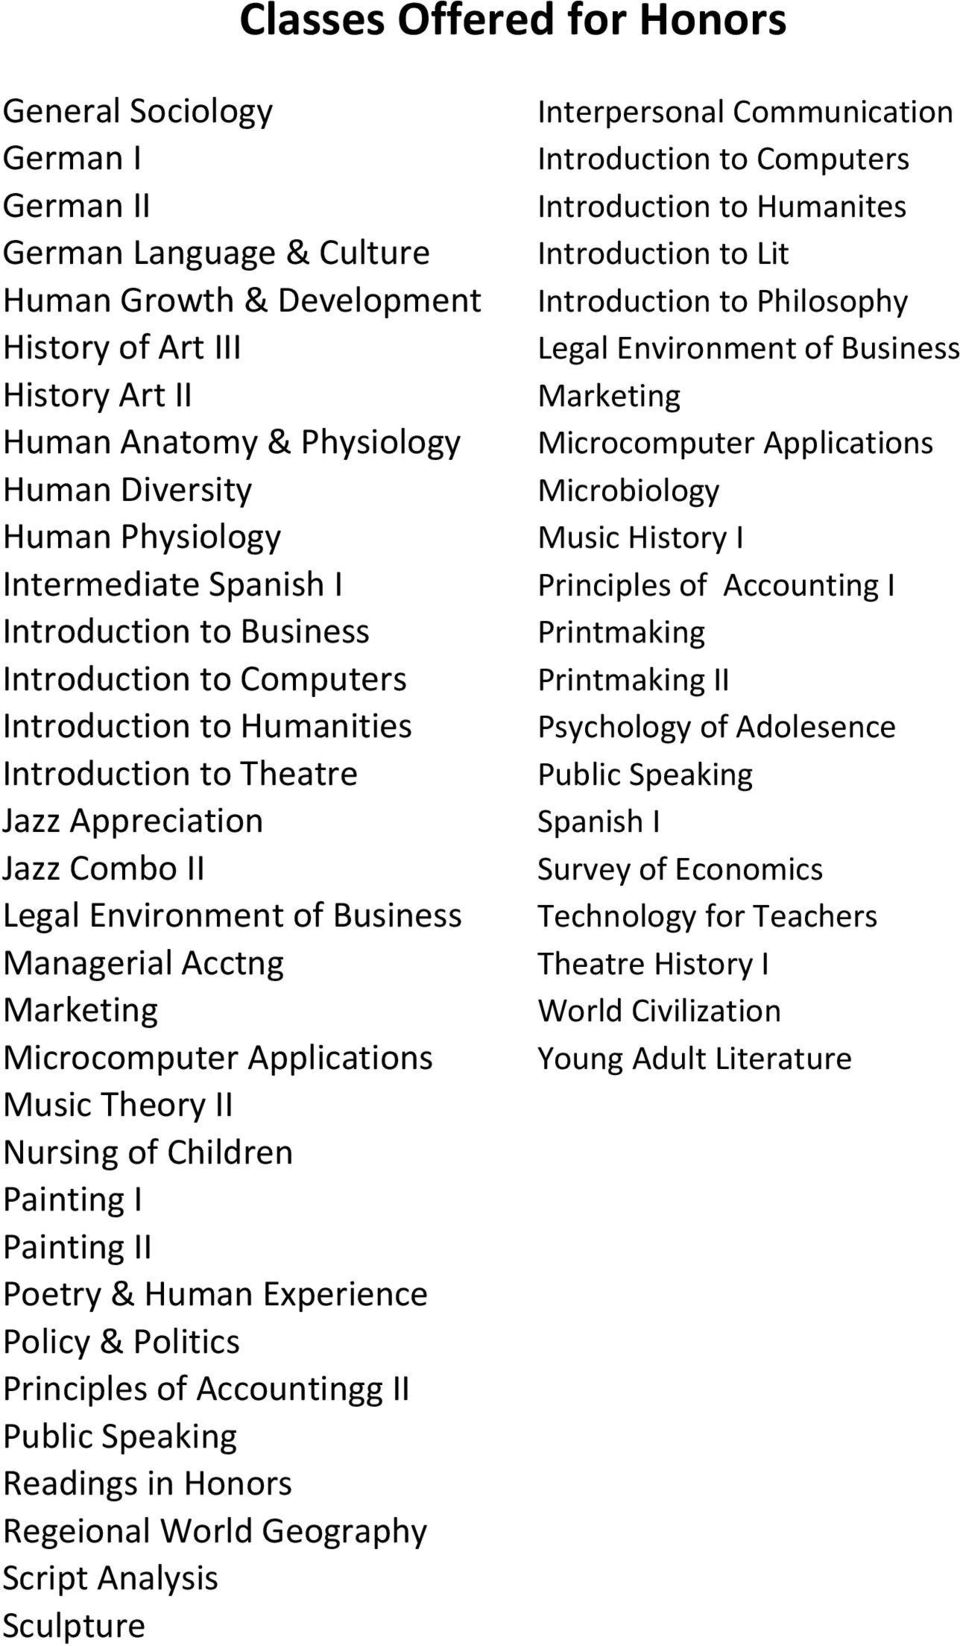 Marketing Microcomputer Applications Music Theory II Nursing of Children Painting I Painting II Poetry & Human Experience Policy & Politics Principles of Accountingg II Public Speaking Readings in